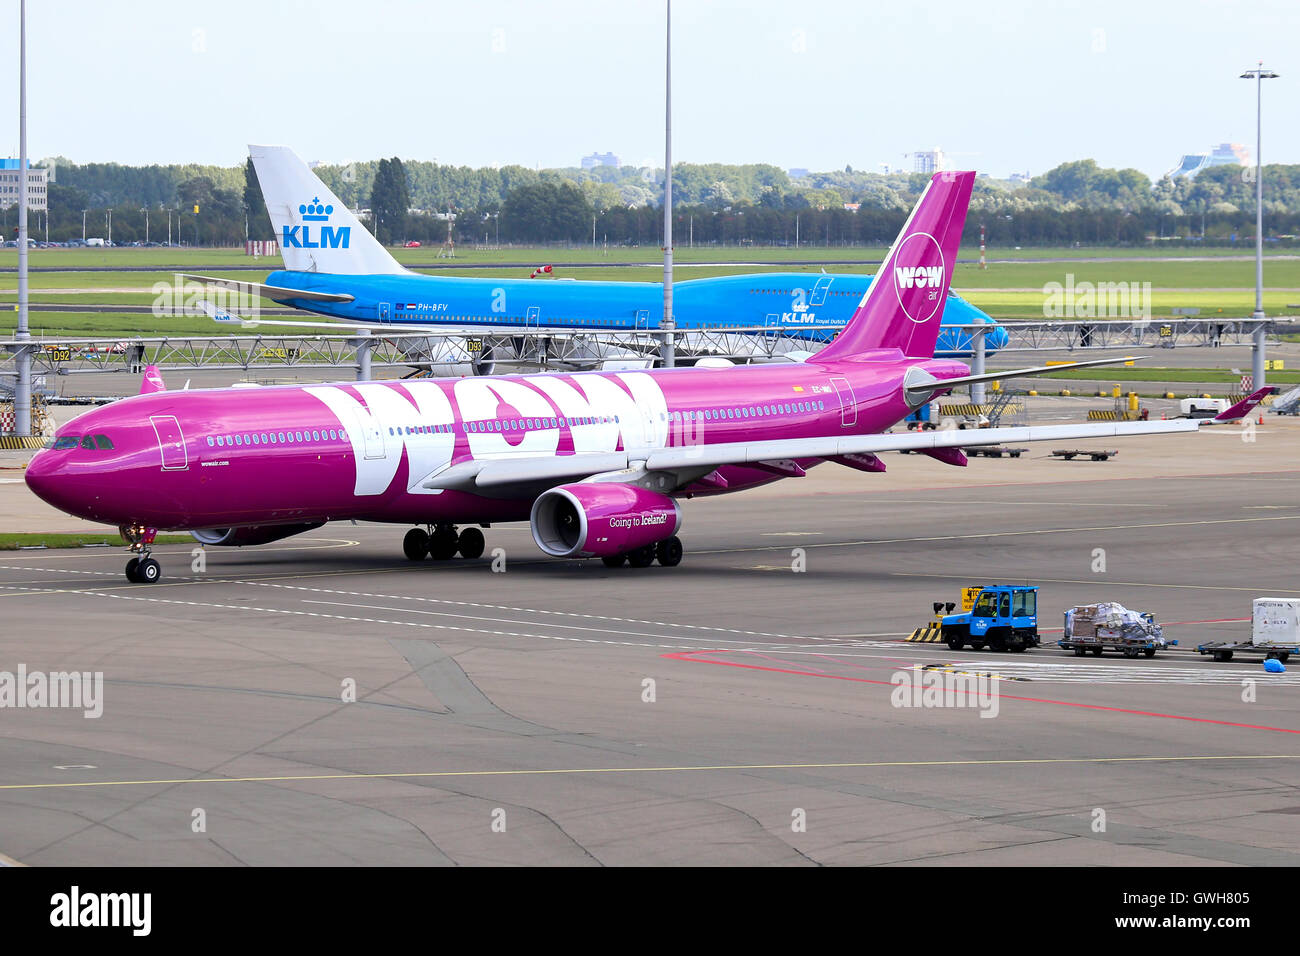 WOW Air Airbus A330-300 taxis for departure at Amsterdam Schipol airport. - Stock Image